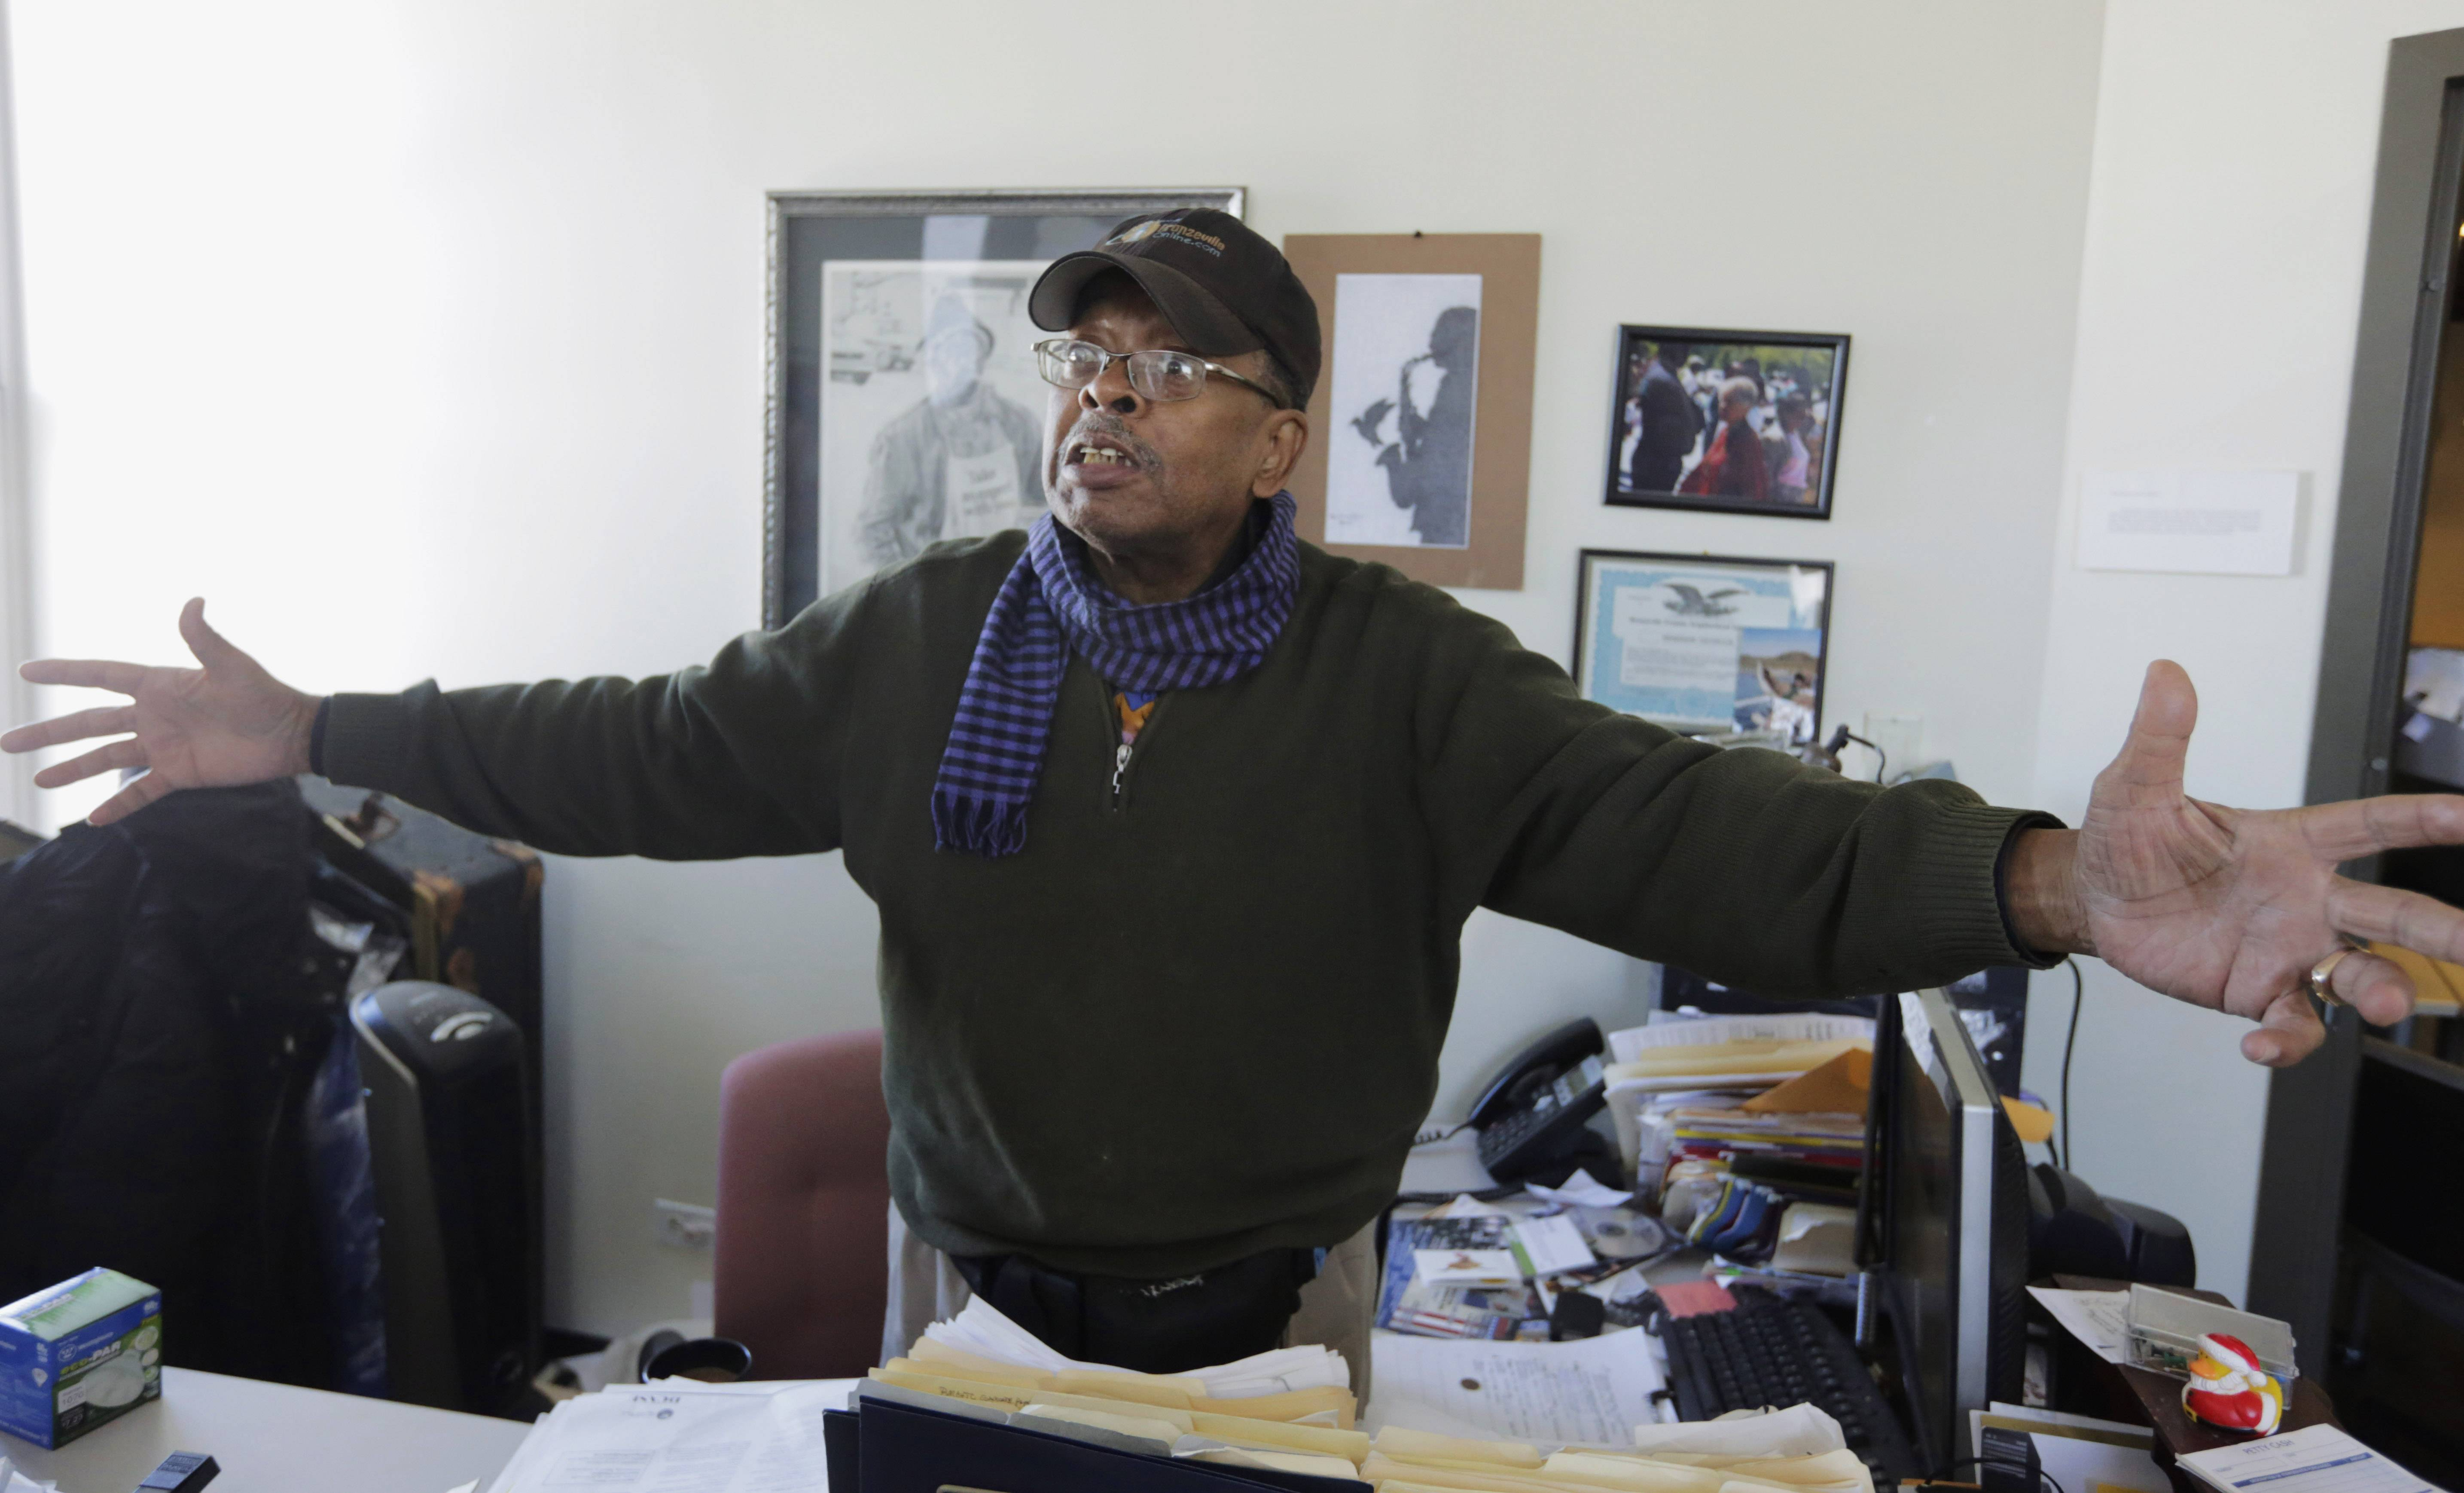 Organizer Harold Lucas is part of a group advocating for Bronzeville, the city's historic center of black culture, business and politics, to become the home to a Barack Obama presidential library. Bronzville is one of six potential Chicago sites bidding to be the location for the library, each backed by different interests.